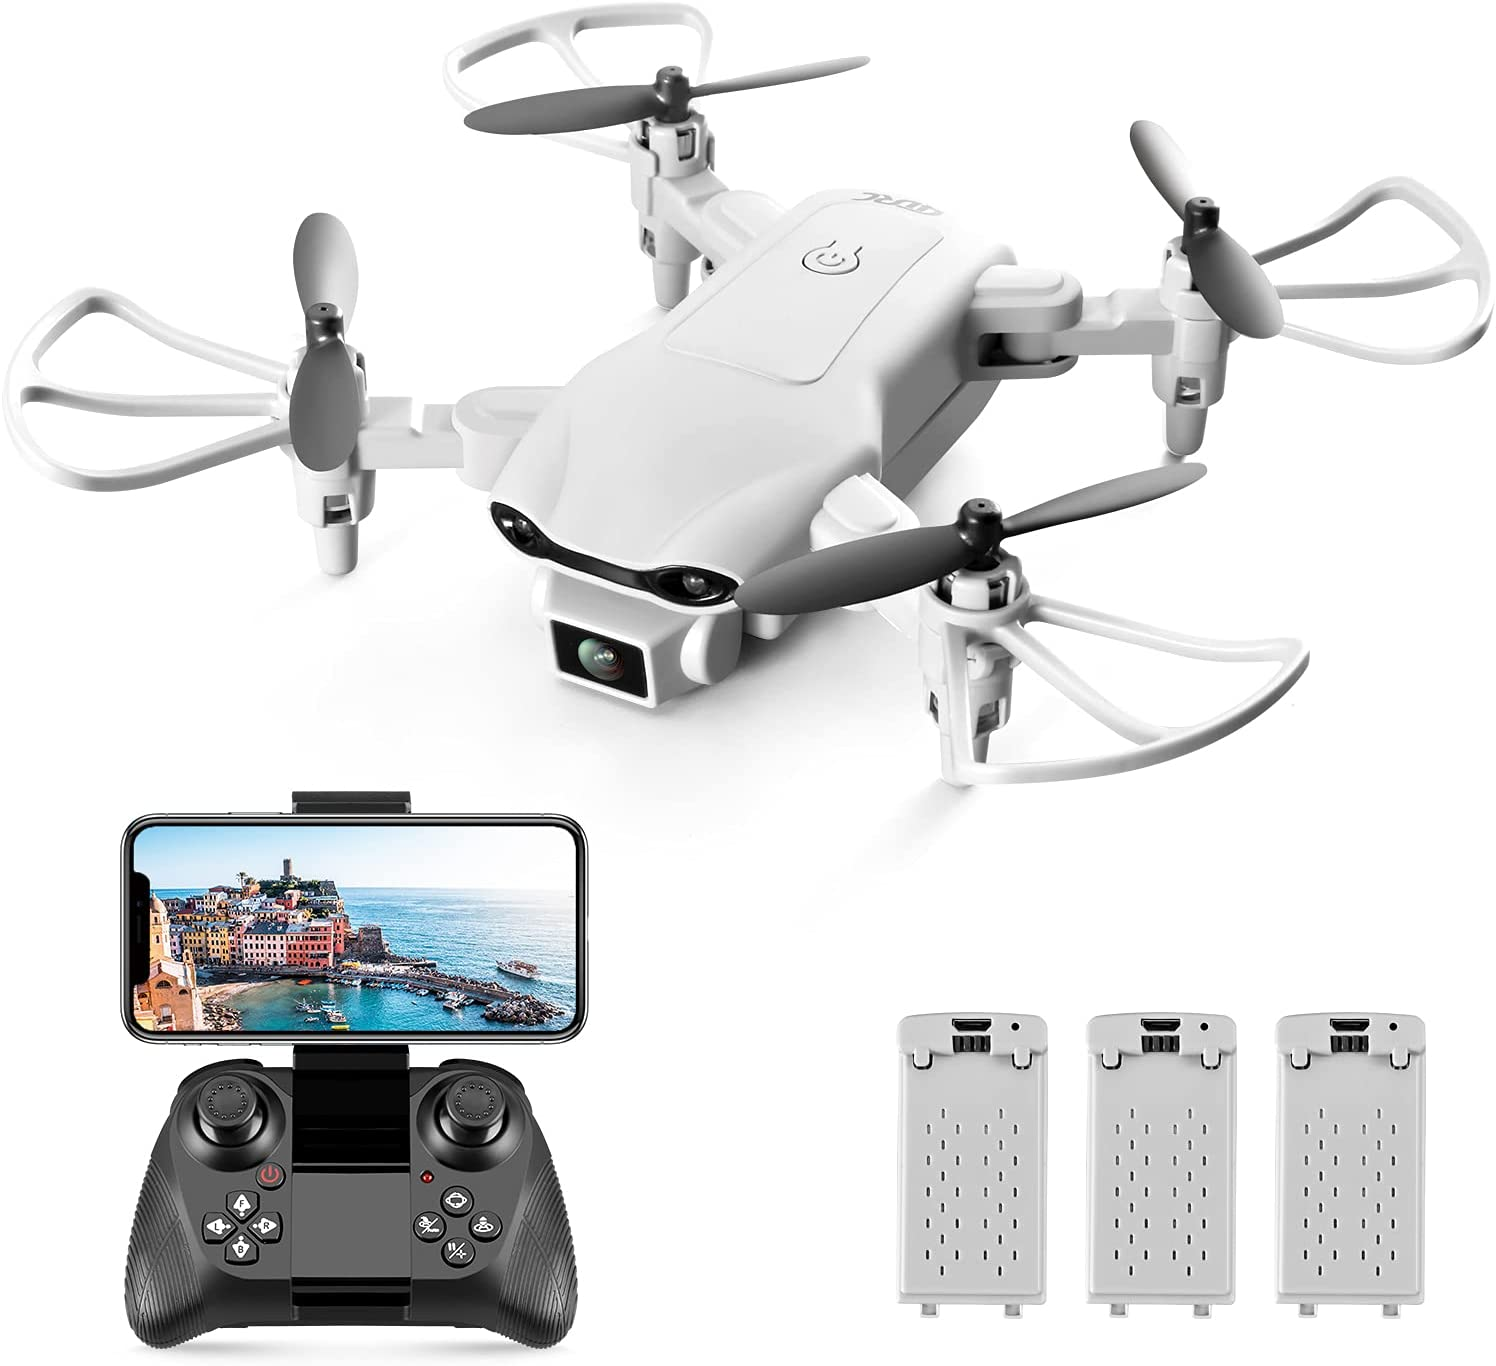 4D RC V9 Mini Drone with Camera for Adults Kids,720P HD Wifi FPV Live Video,RC Quadcopter Helicopter Beginners Toys Gifts,3 Batteries, Altitude Hold, Waypoints Functions, One Key Start, 3D Flips,Gray